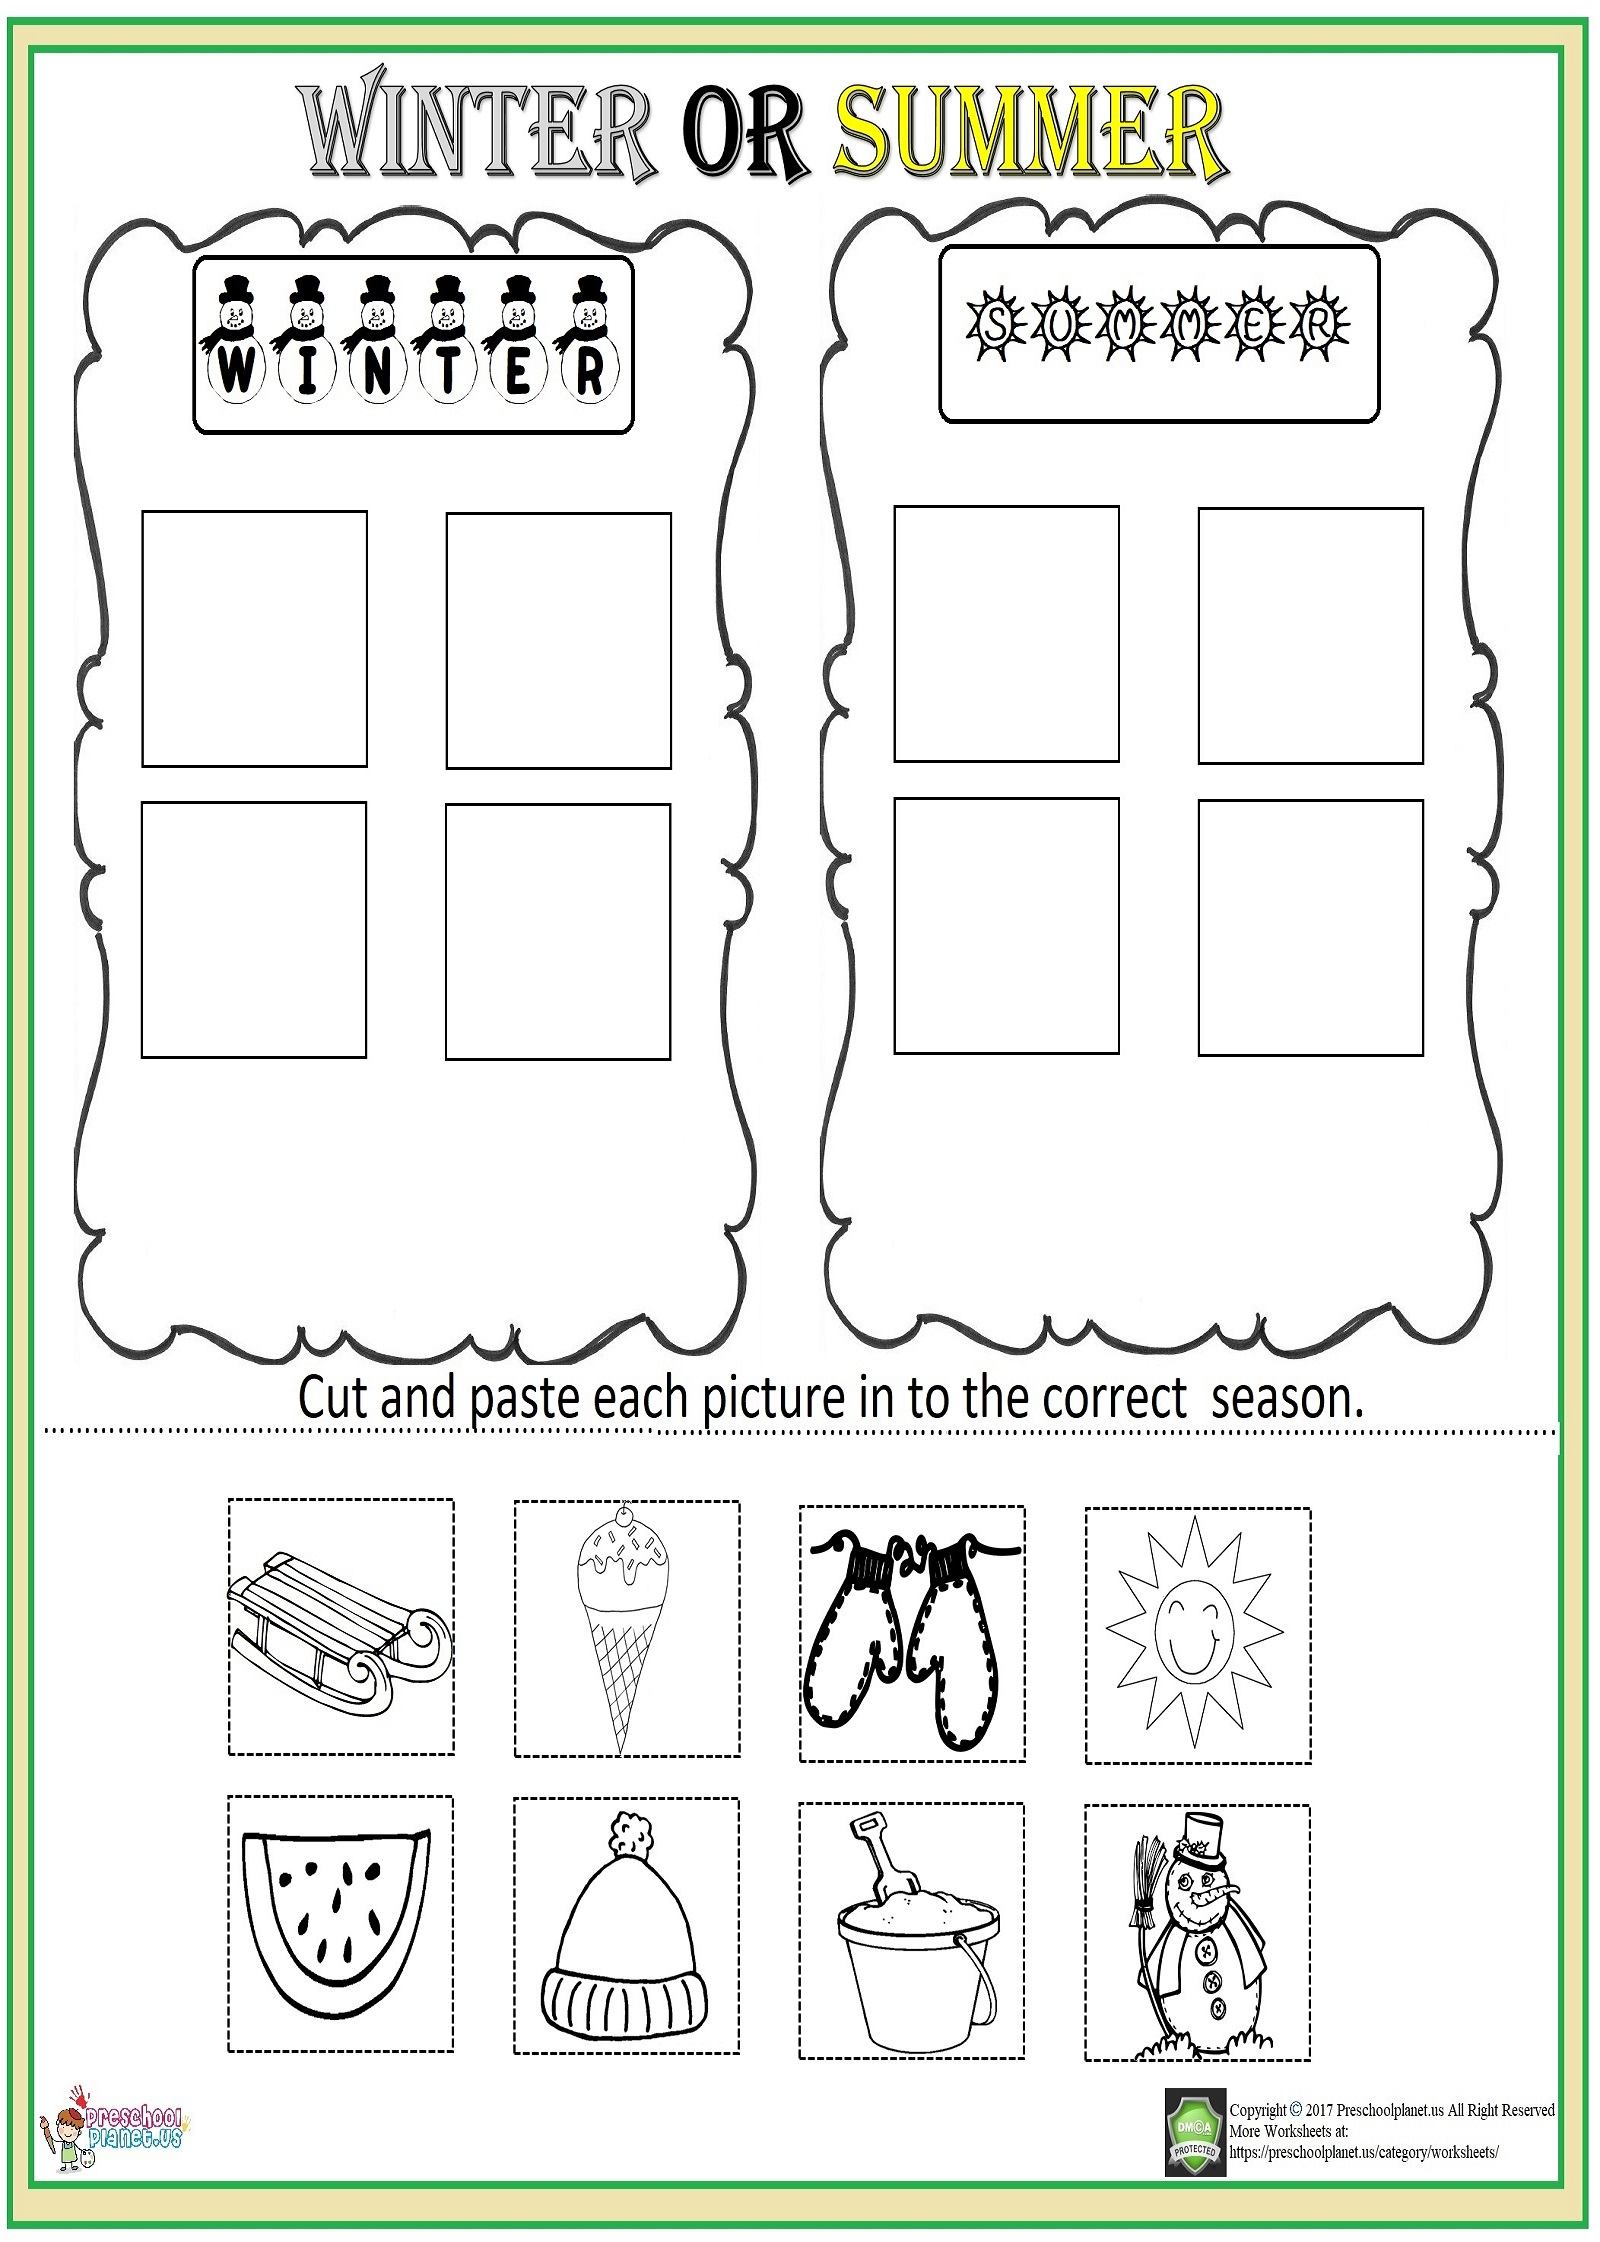 Cut And Paste Season Worksheet